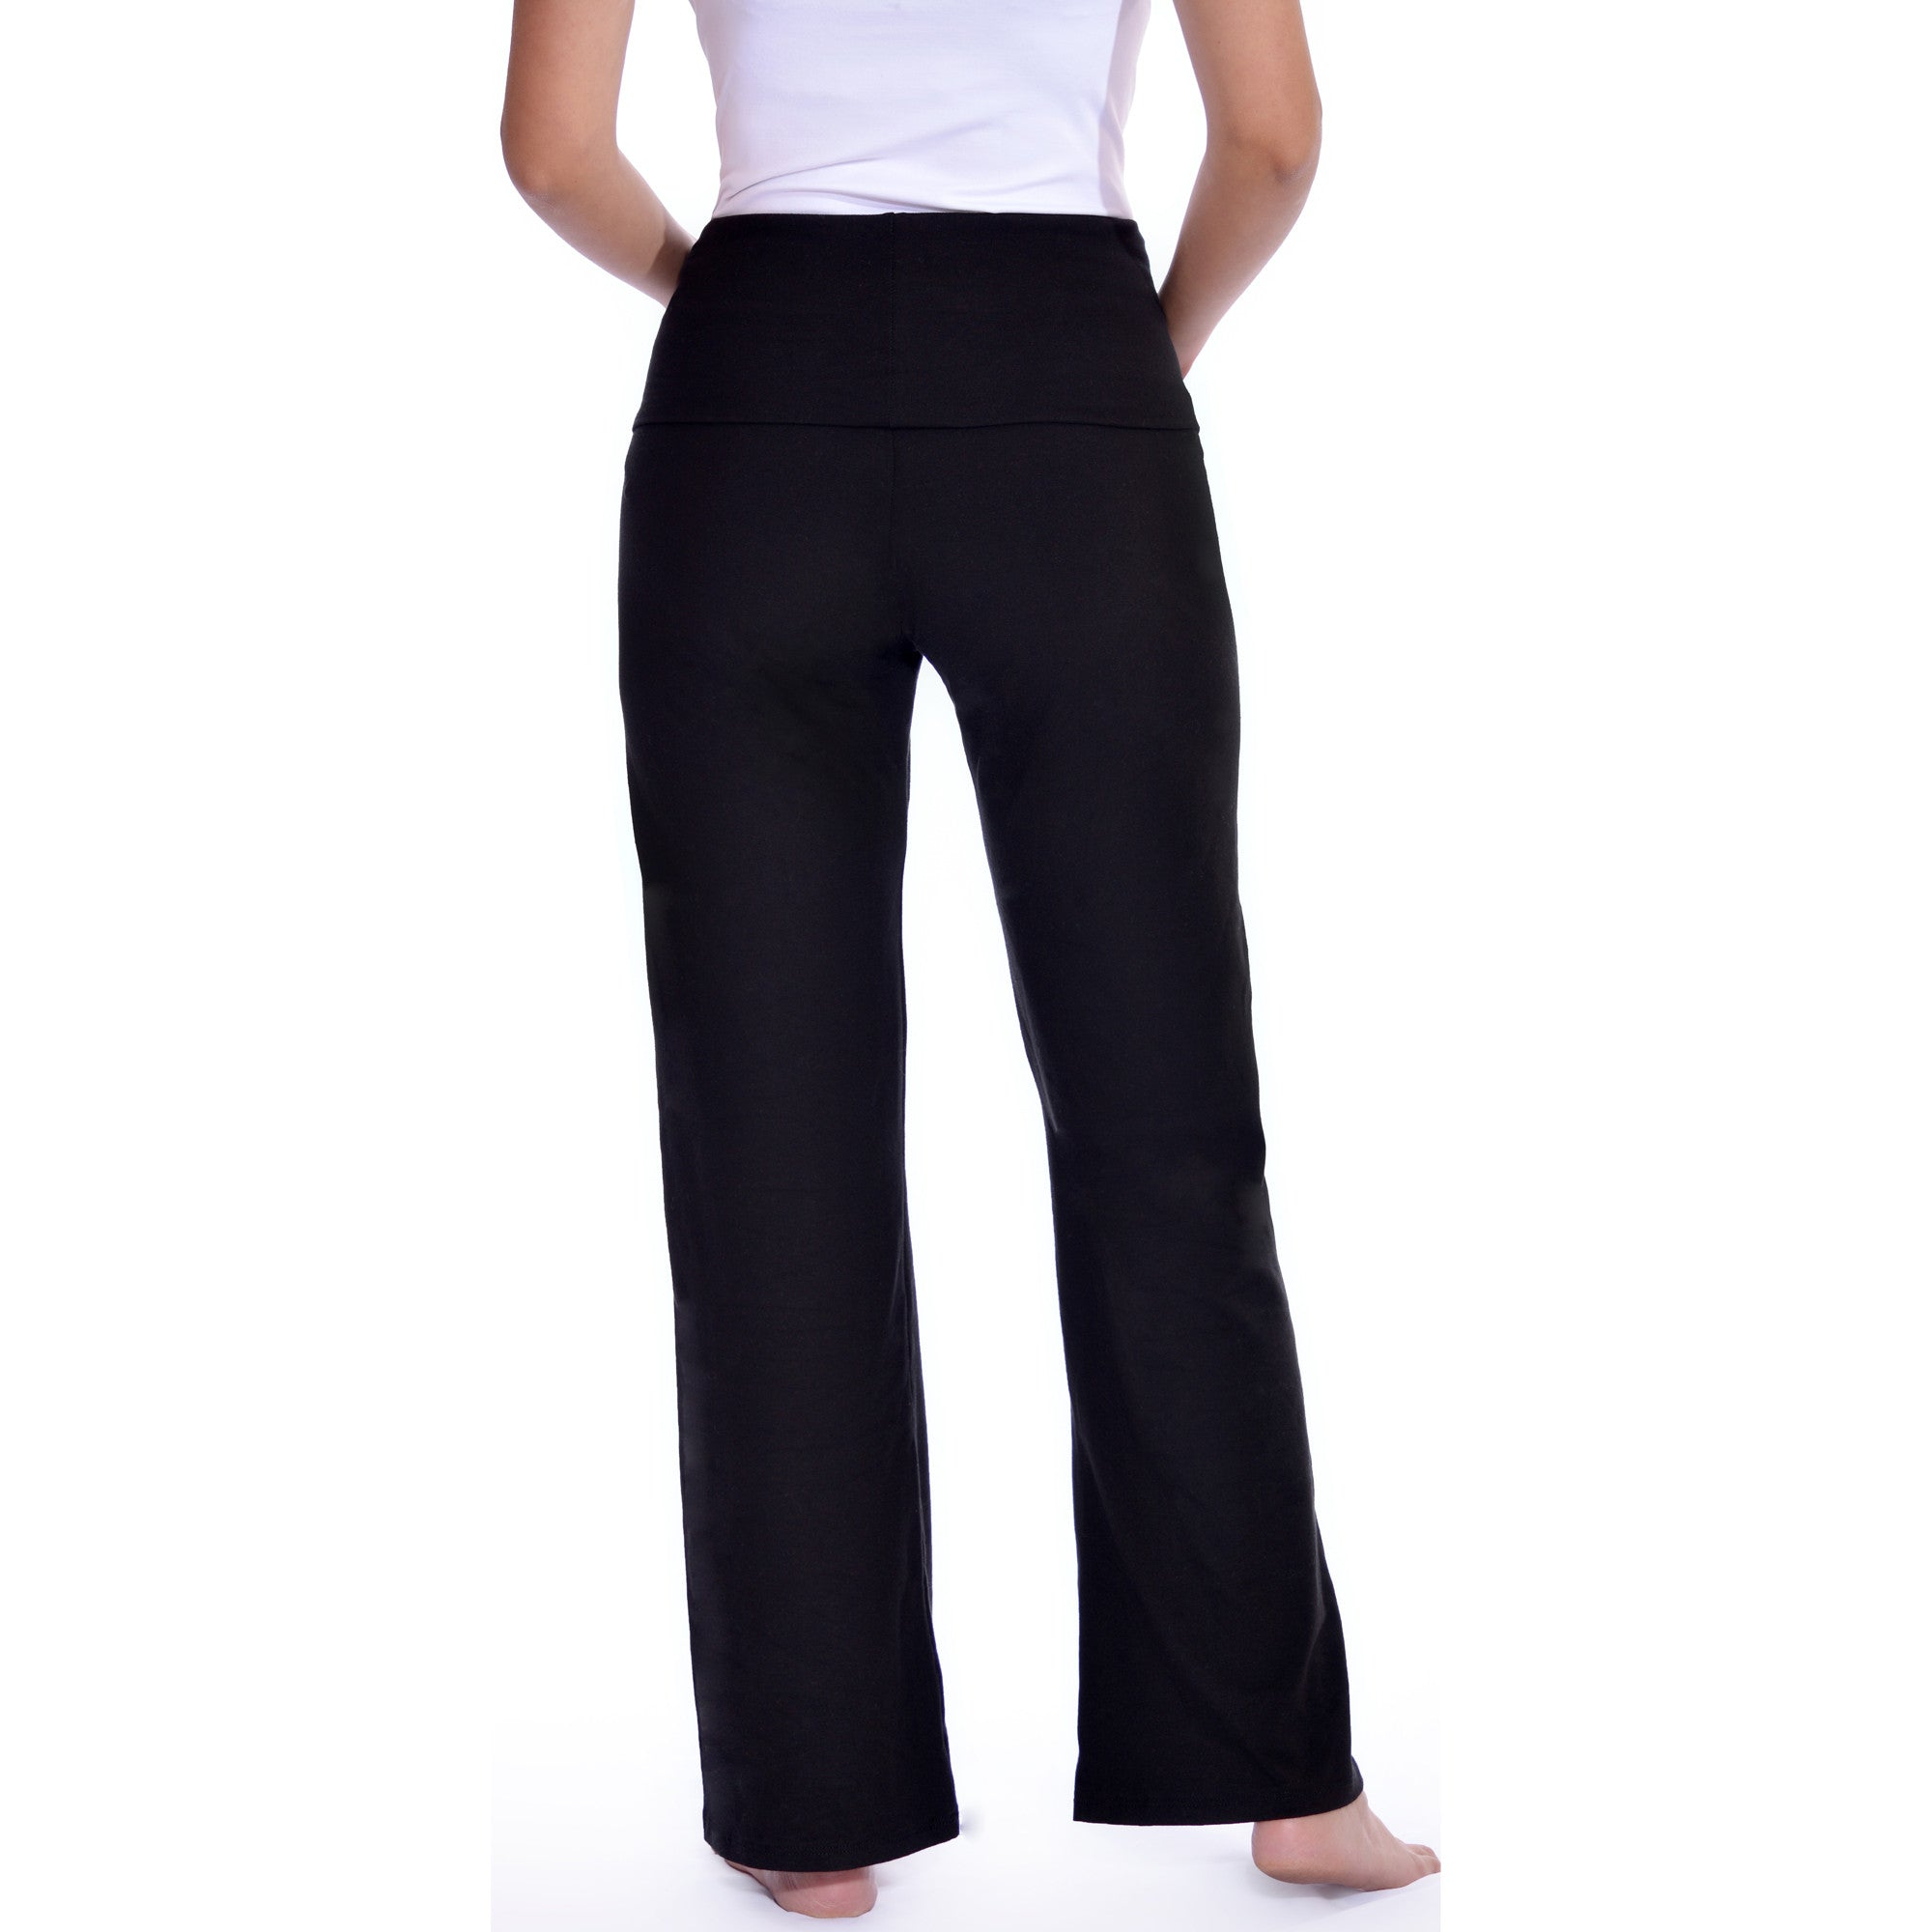 6c0ce995a91b5 Maternity Yoga Pants for Tall Women (if your height is 5'9